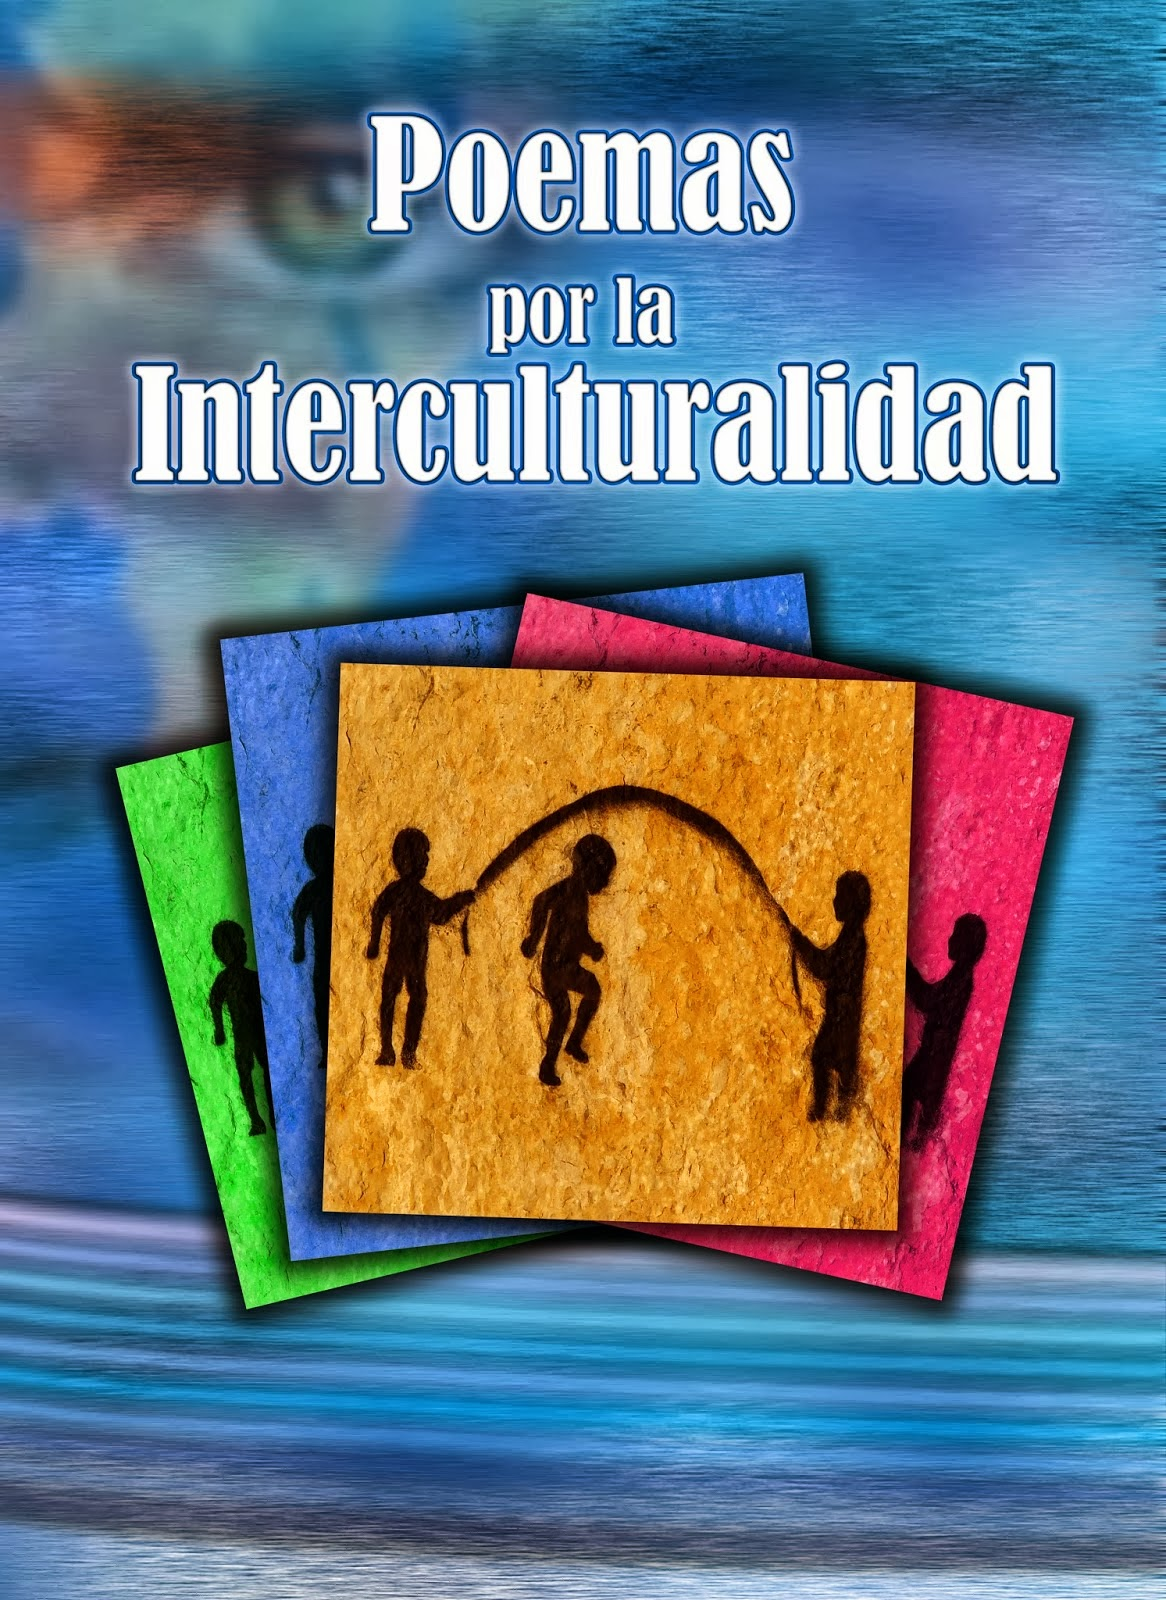 PARTICIPACIÓN EN